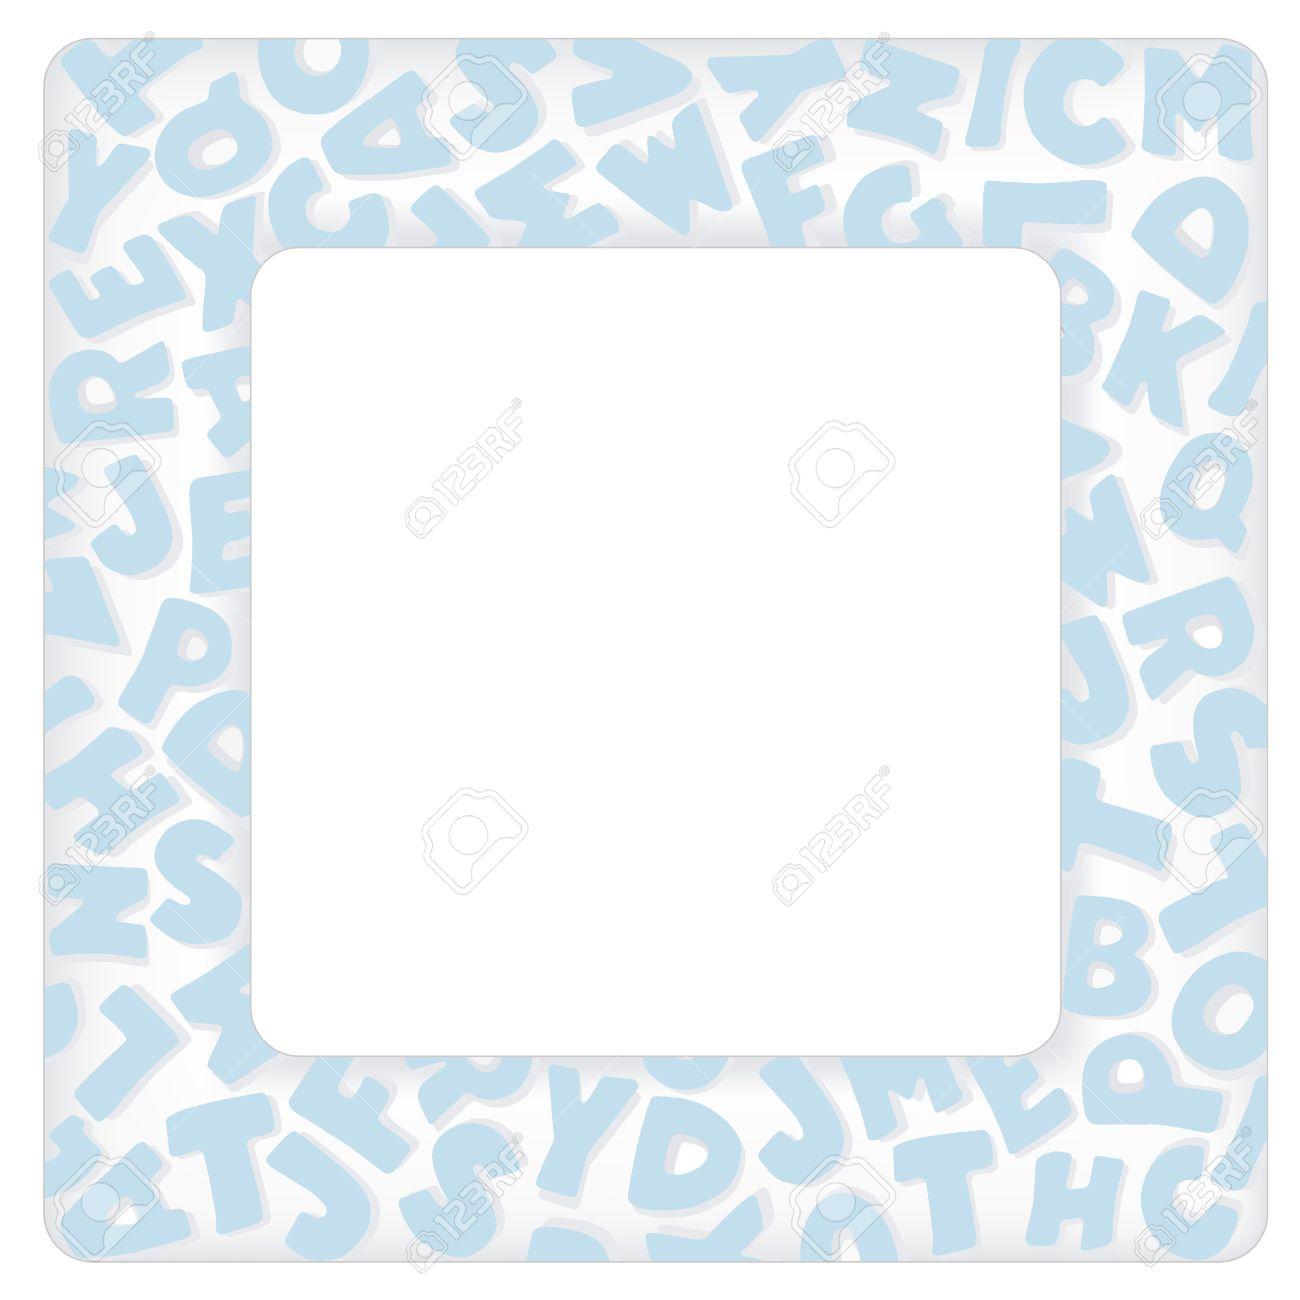 Alphabet frame square pastel blue letter border with copy space do it yourself crafts alphabet frame square pastel blue letter border with copy space for baby books albums solutioingenieria Image collections